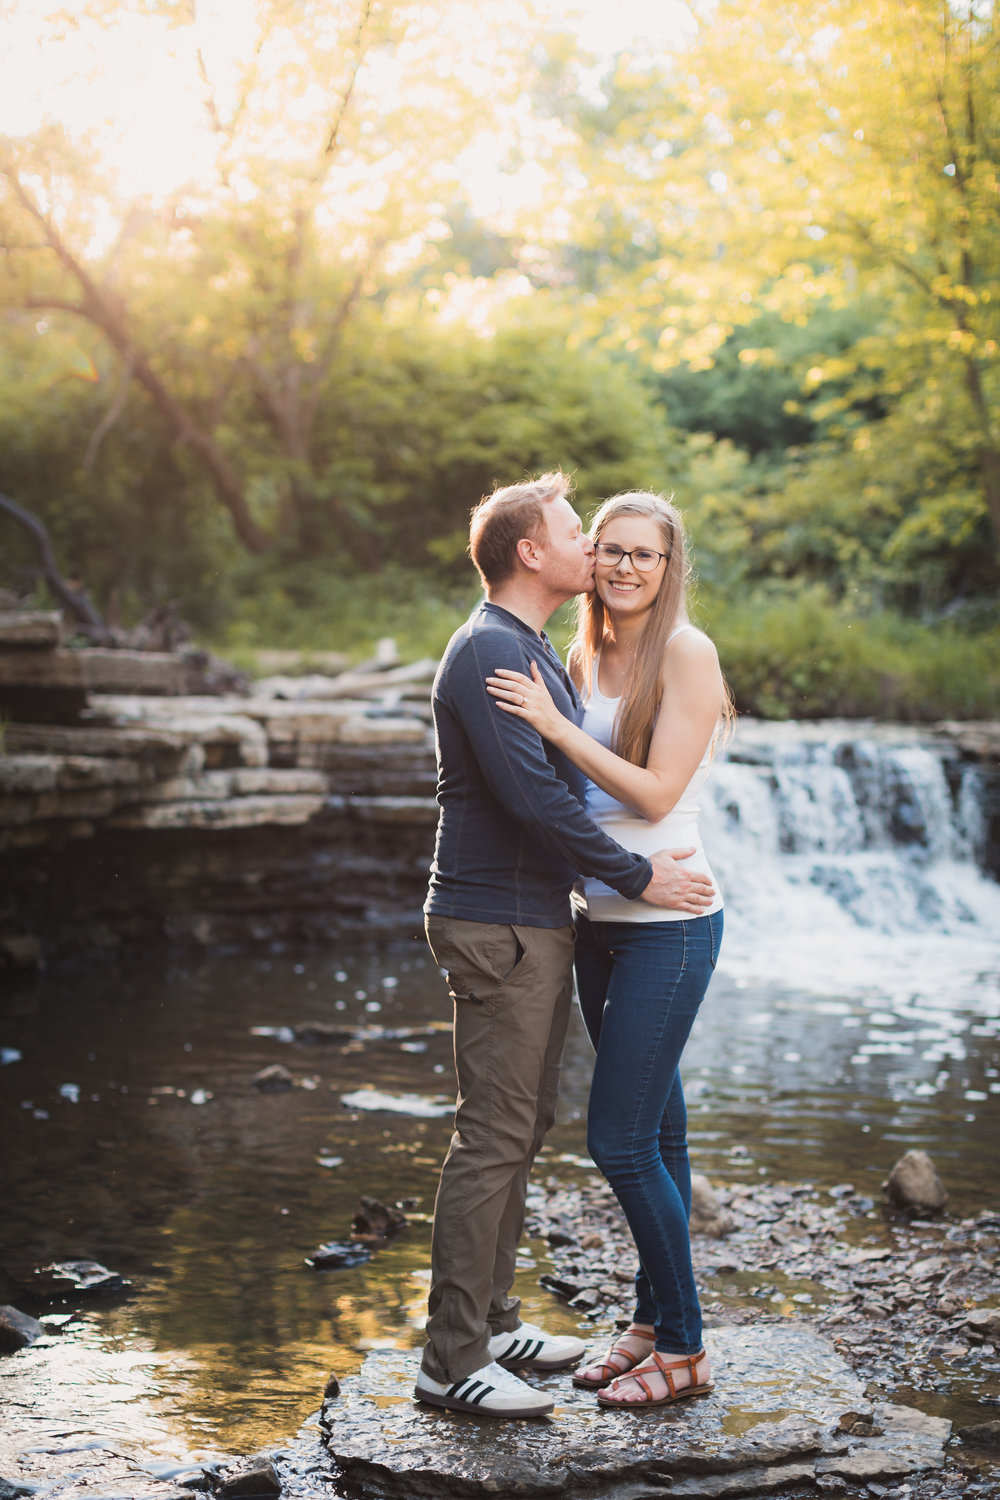 amanda+sean_engagement_20180603_09.jpg